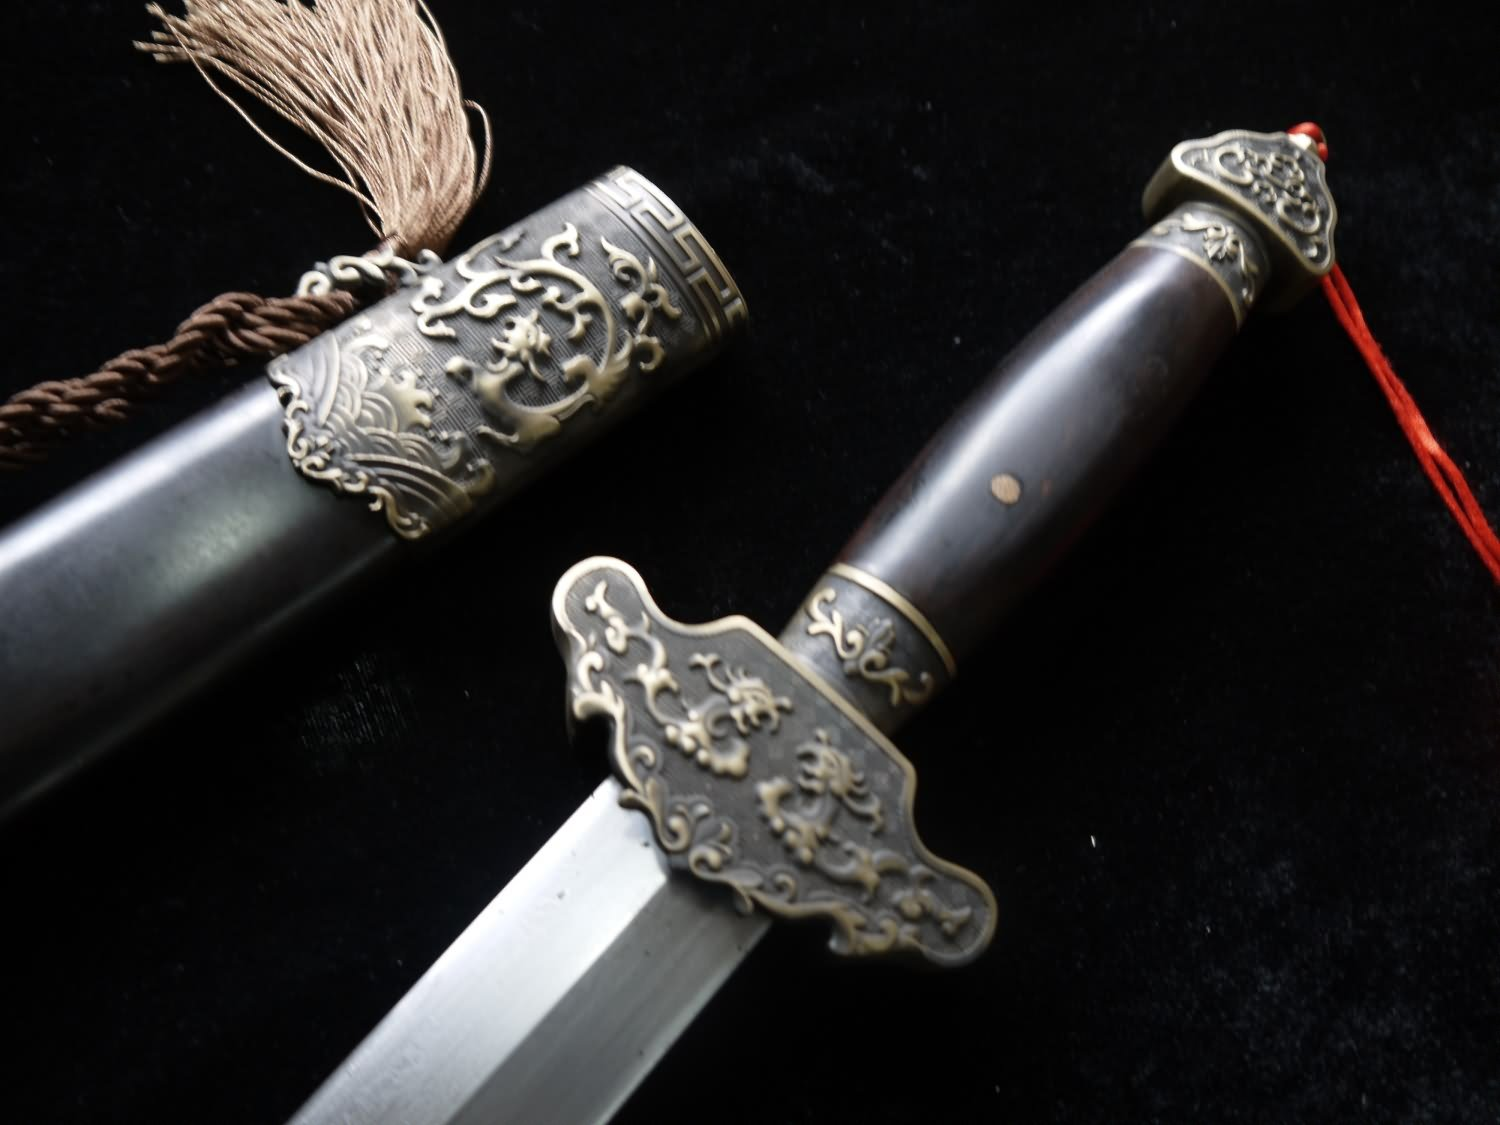 Chinese Sword/Hand Forged/Damascus Steel Blade/Black Wooden Scabbard/Brass/Heat Tempered/Full Tang